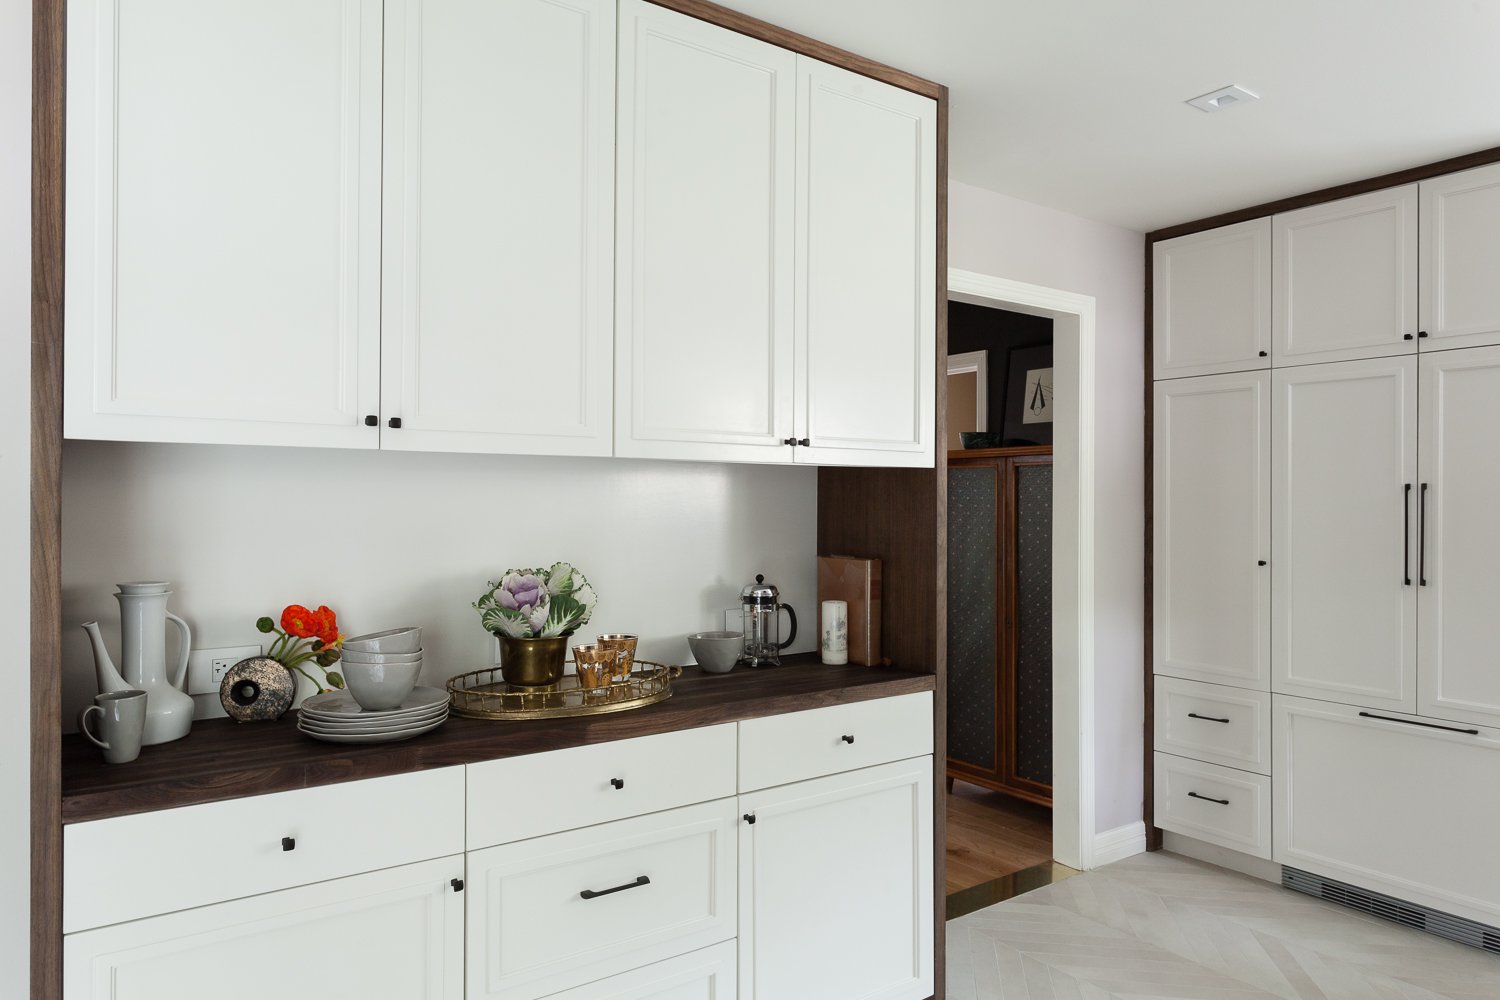 Built in custom hutch with white cabinets in Benjamin Moore Sea Pearl paint and walnut casing.